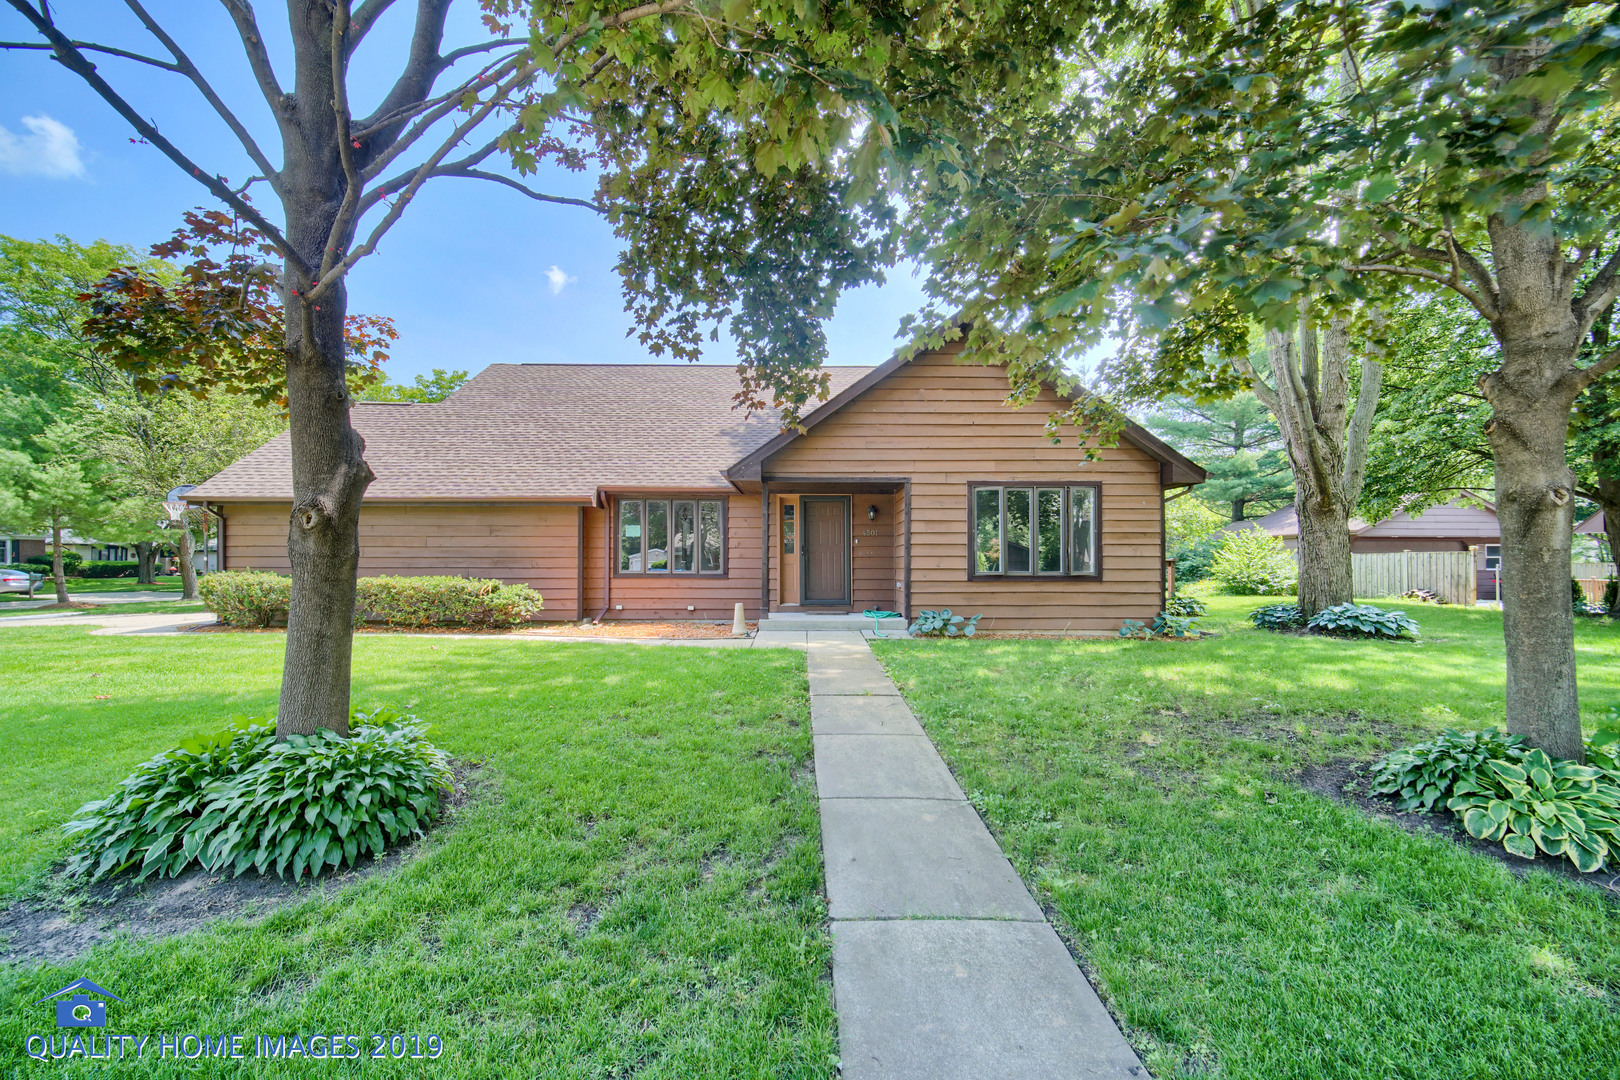 Photo of 4501 Pride Court ROLLING MEADOWS IL 60008